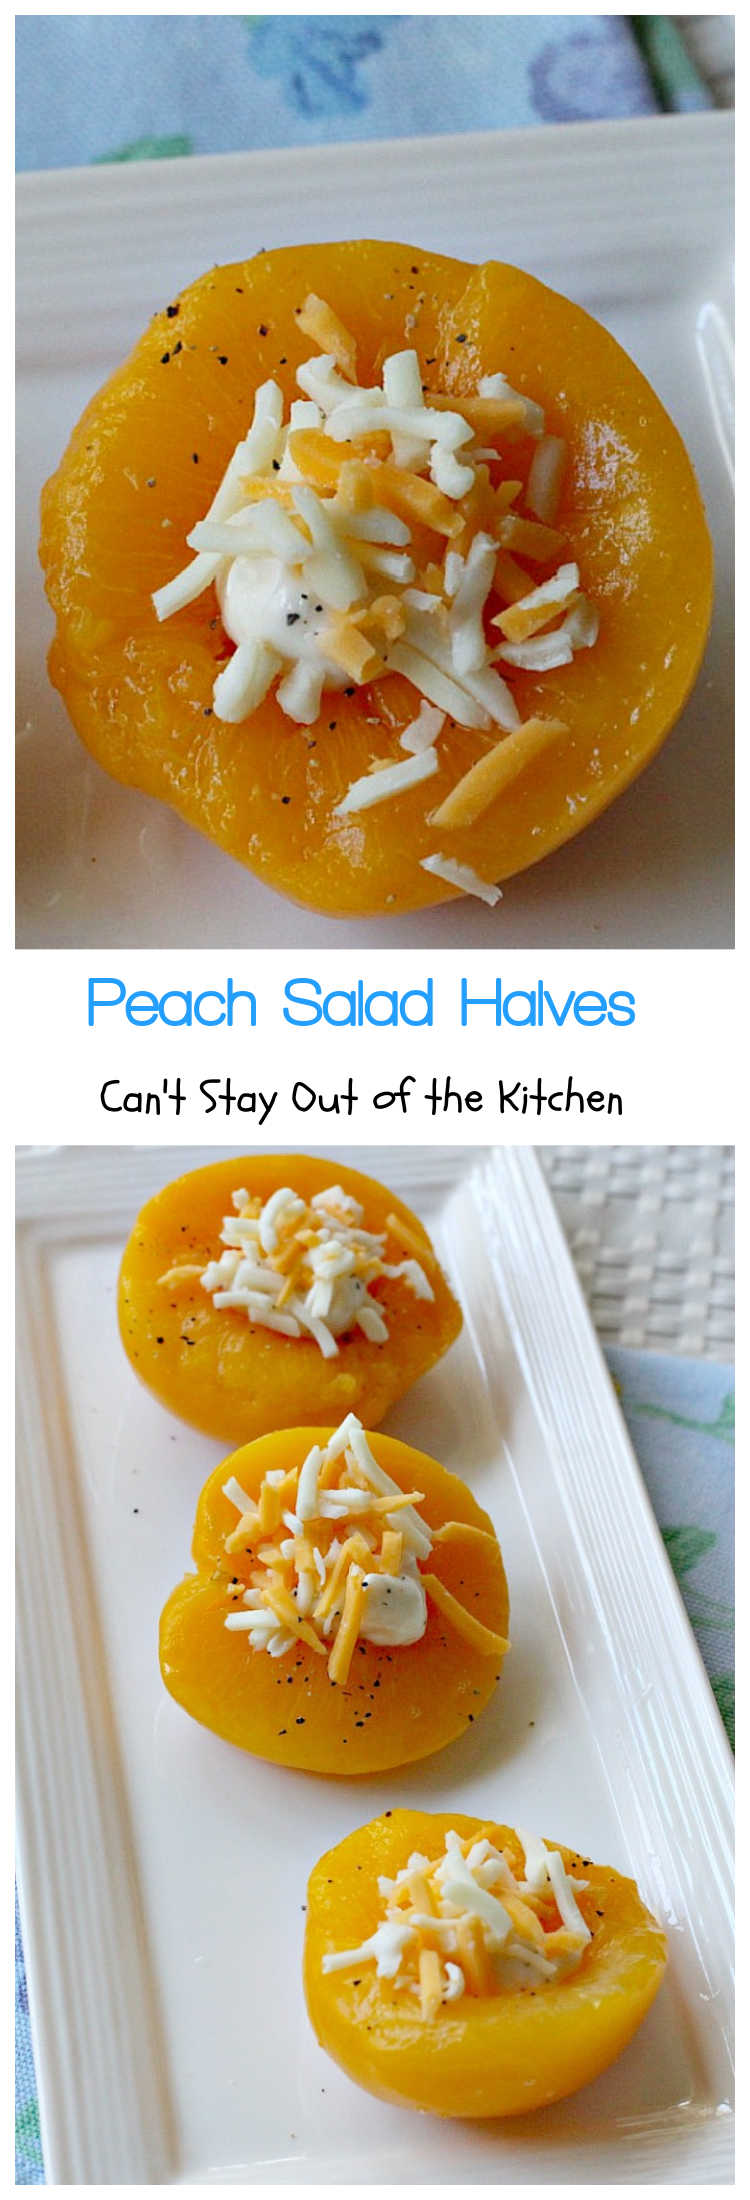 Peach Salad Halves | Can't Stay Out of the Kitchen | Everyone raves over this easy & simple #salad every time I make it. This lovely #FruitSalad has only 4 ingredients making it wonderful for #holiday menus, too. #peaches #cheese #GlutenFree #PeachSaladHalves